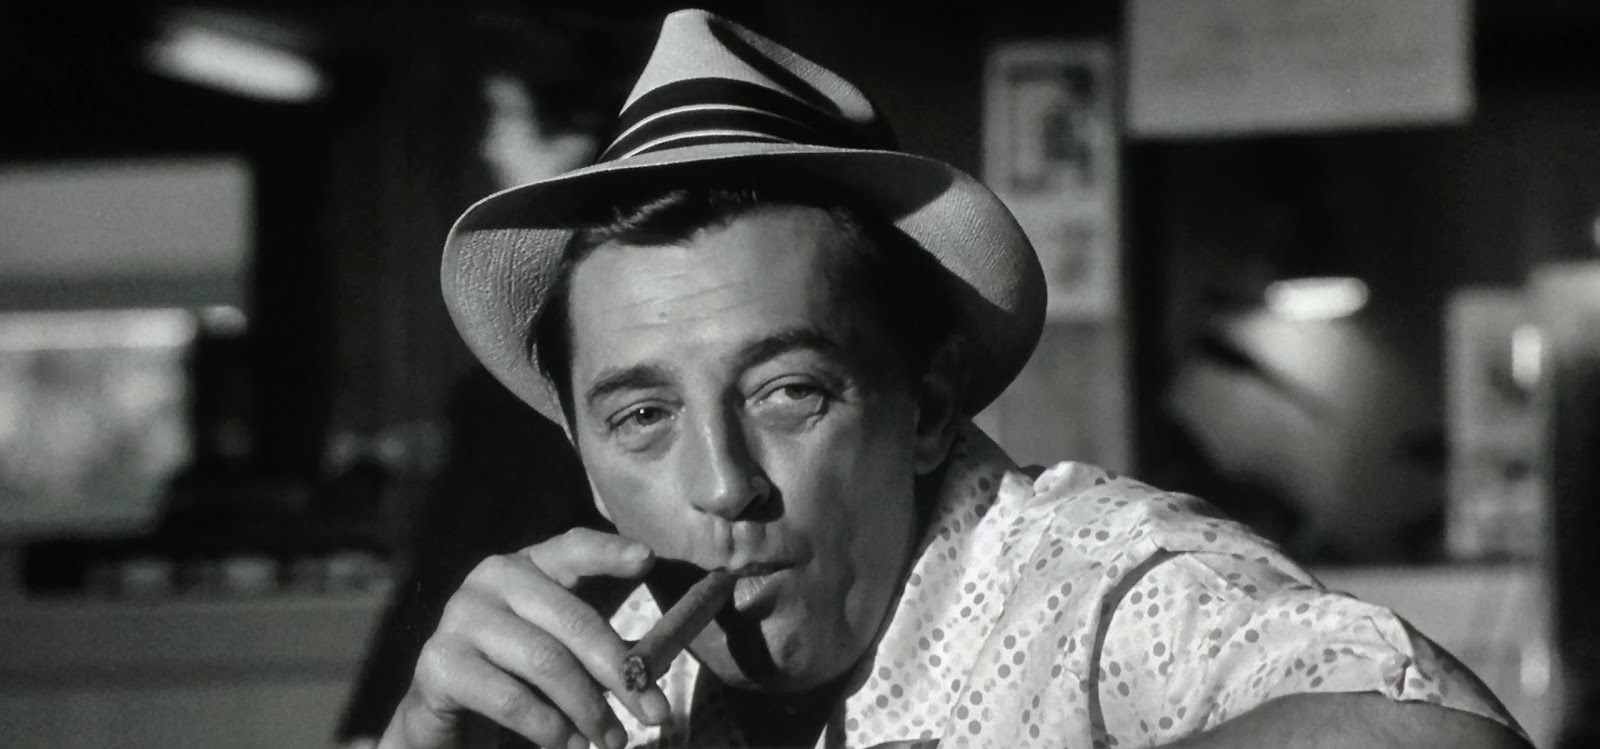 Robert Mitchum as Max Cady in Cape Fear (1962)